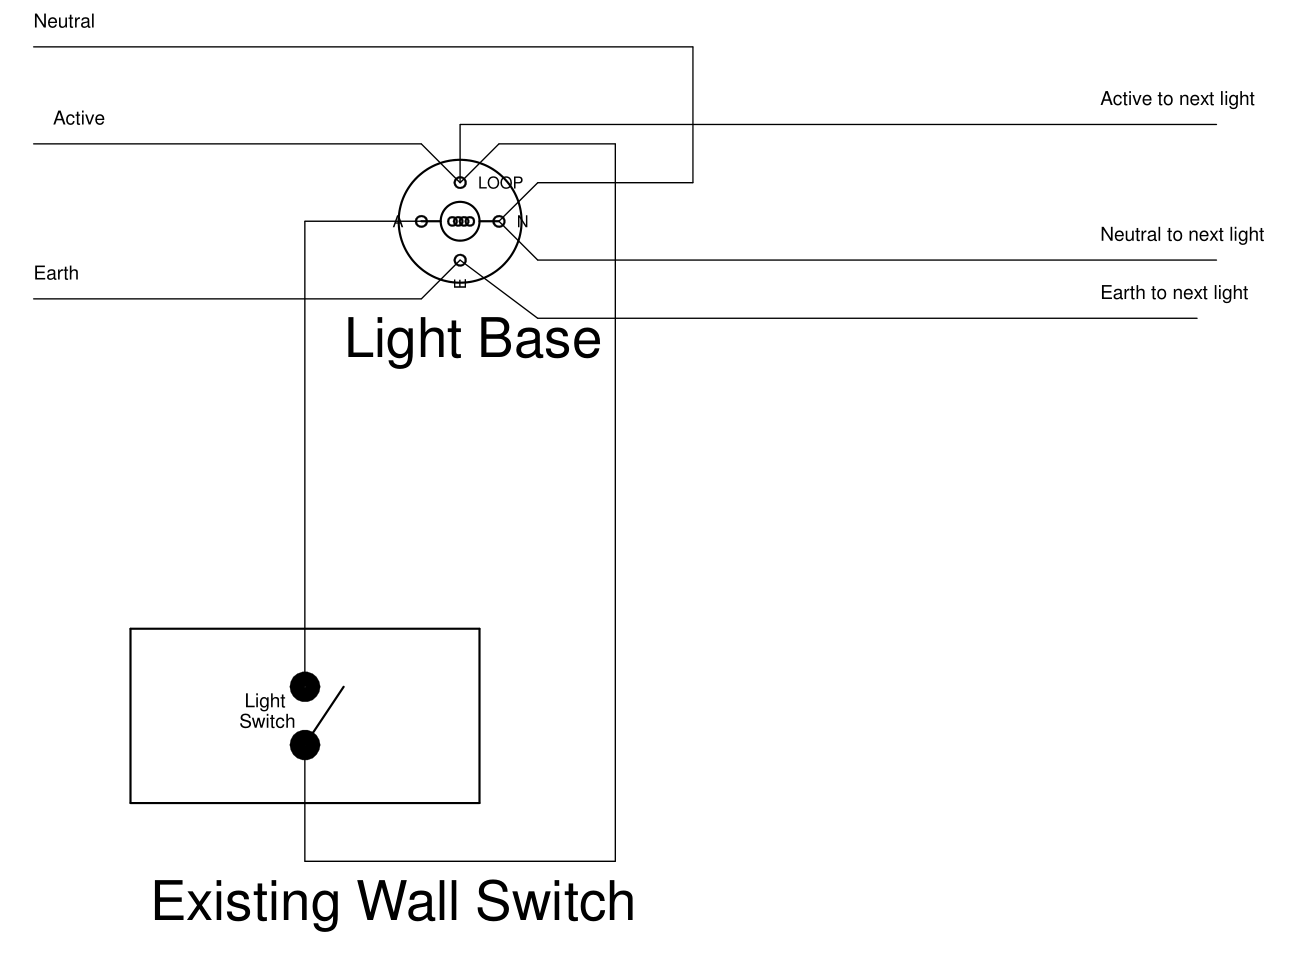 hight resolution of active neutral and earth wires are often looped from light base to light base for each light the active is looped down to the wall switch and back to the